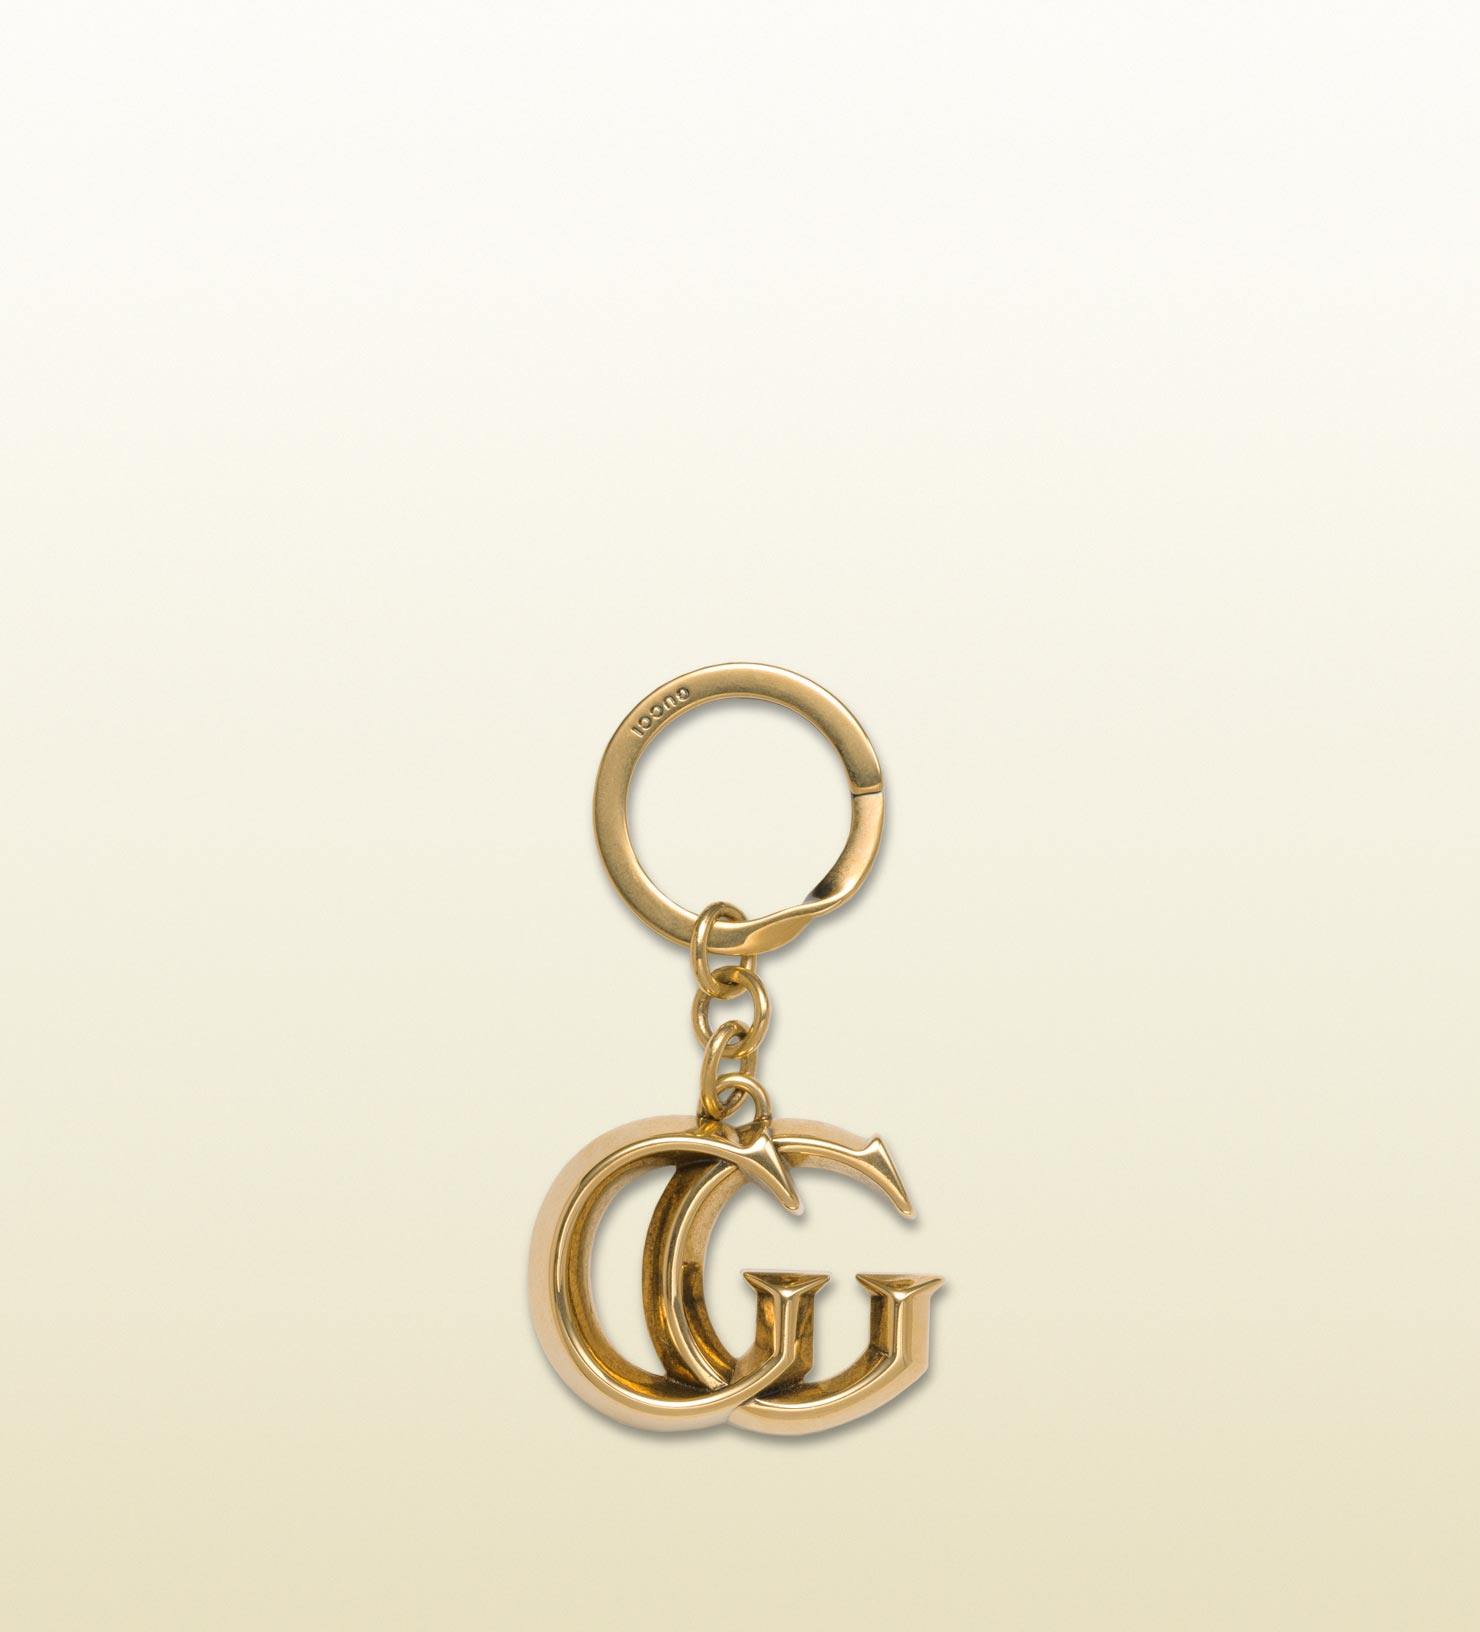 ad0fd4d9fdd08 Lyst - Gucci Key Ring with Double G Detail in Metallic for Men